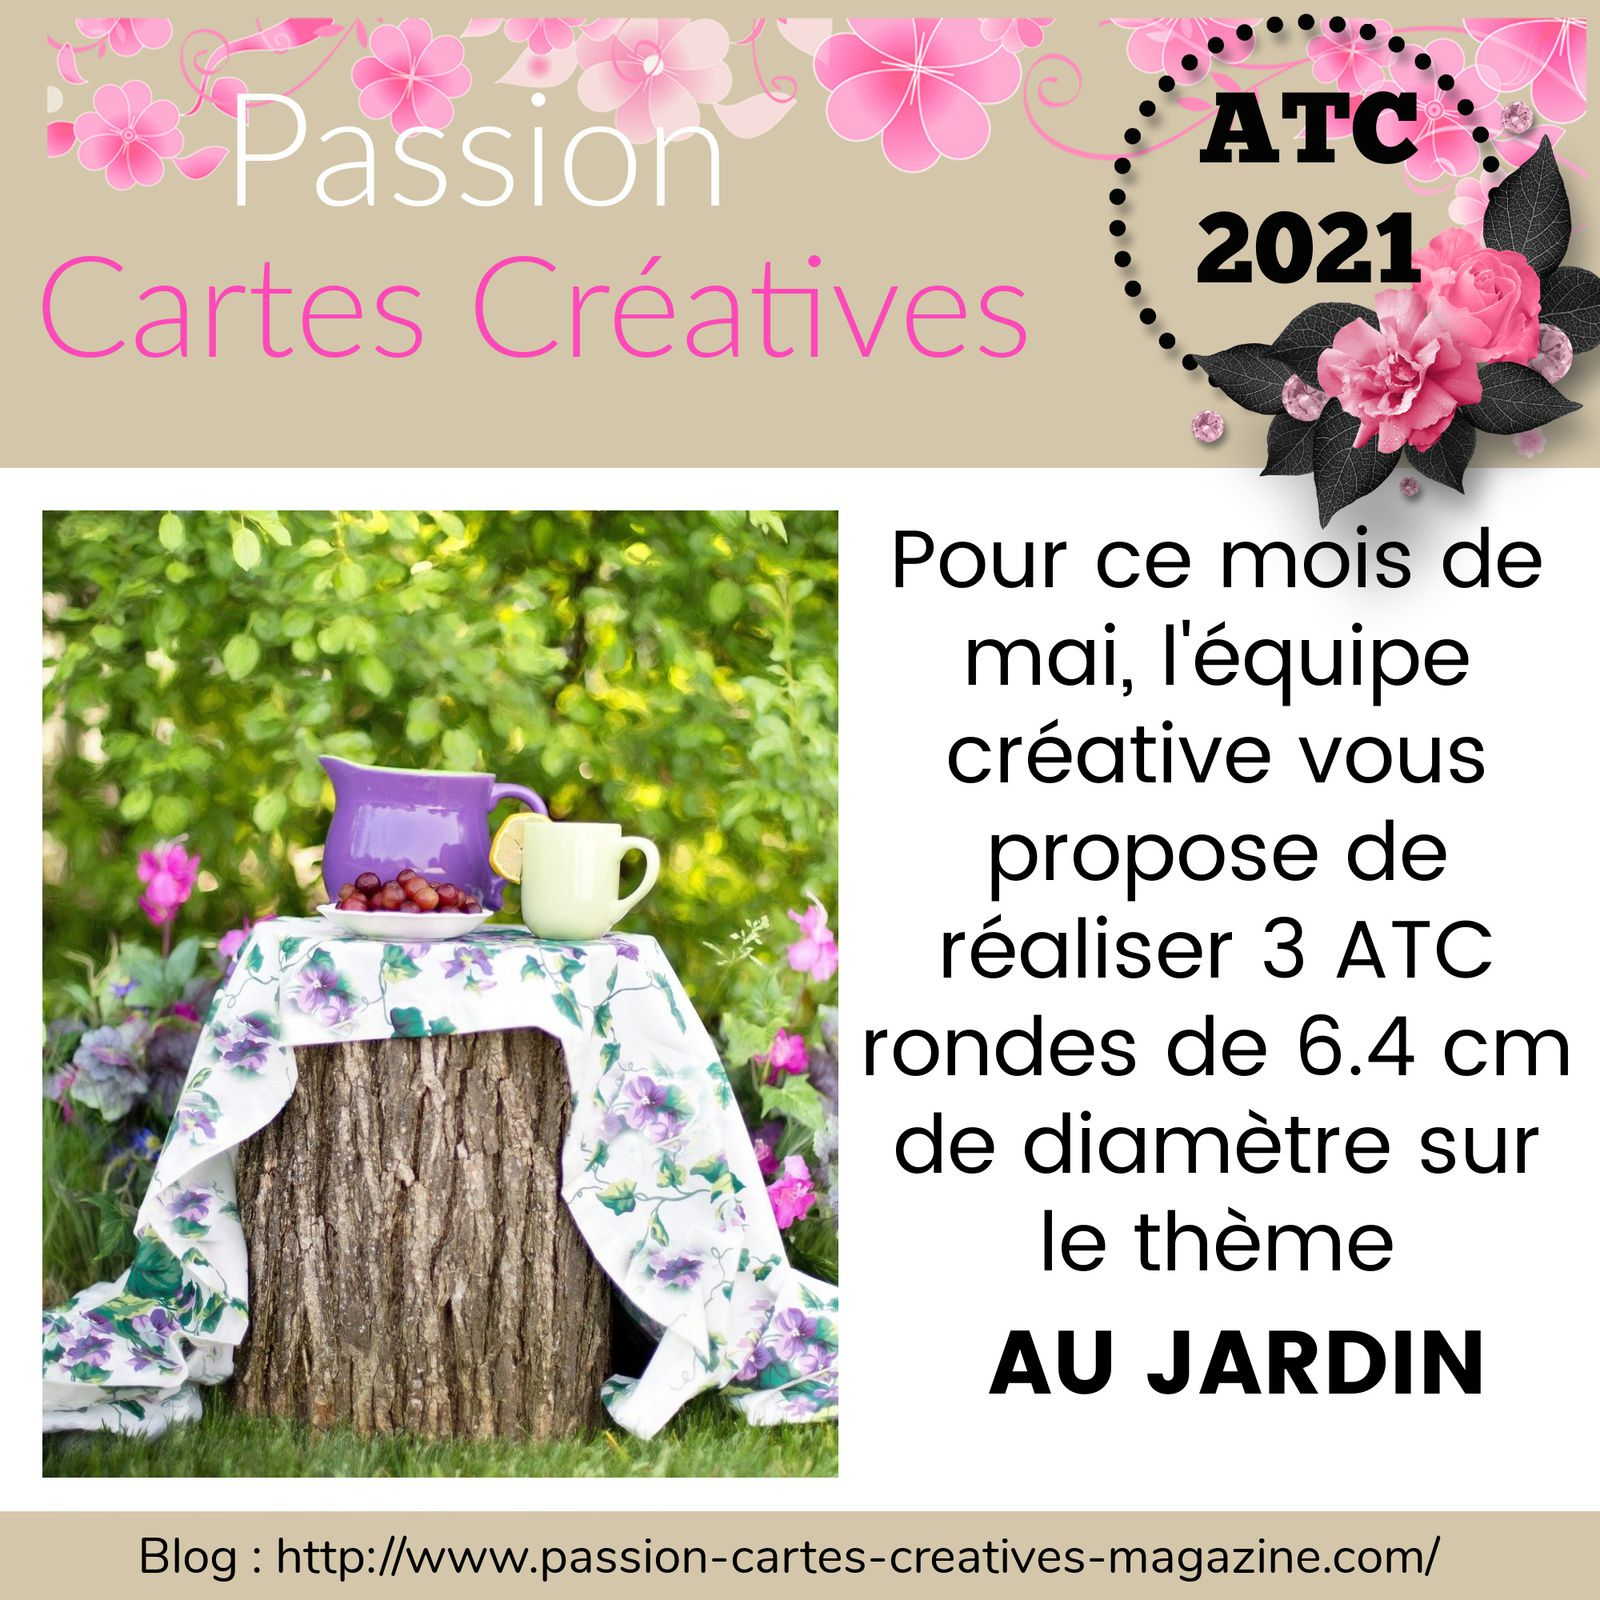 ATC de mai de Passion Cartes Créatives